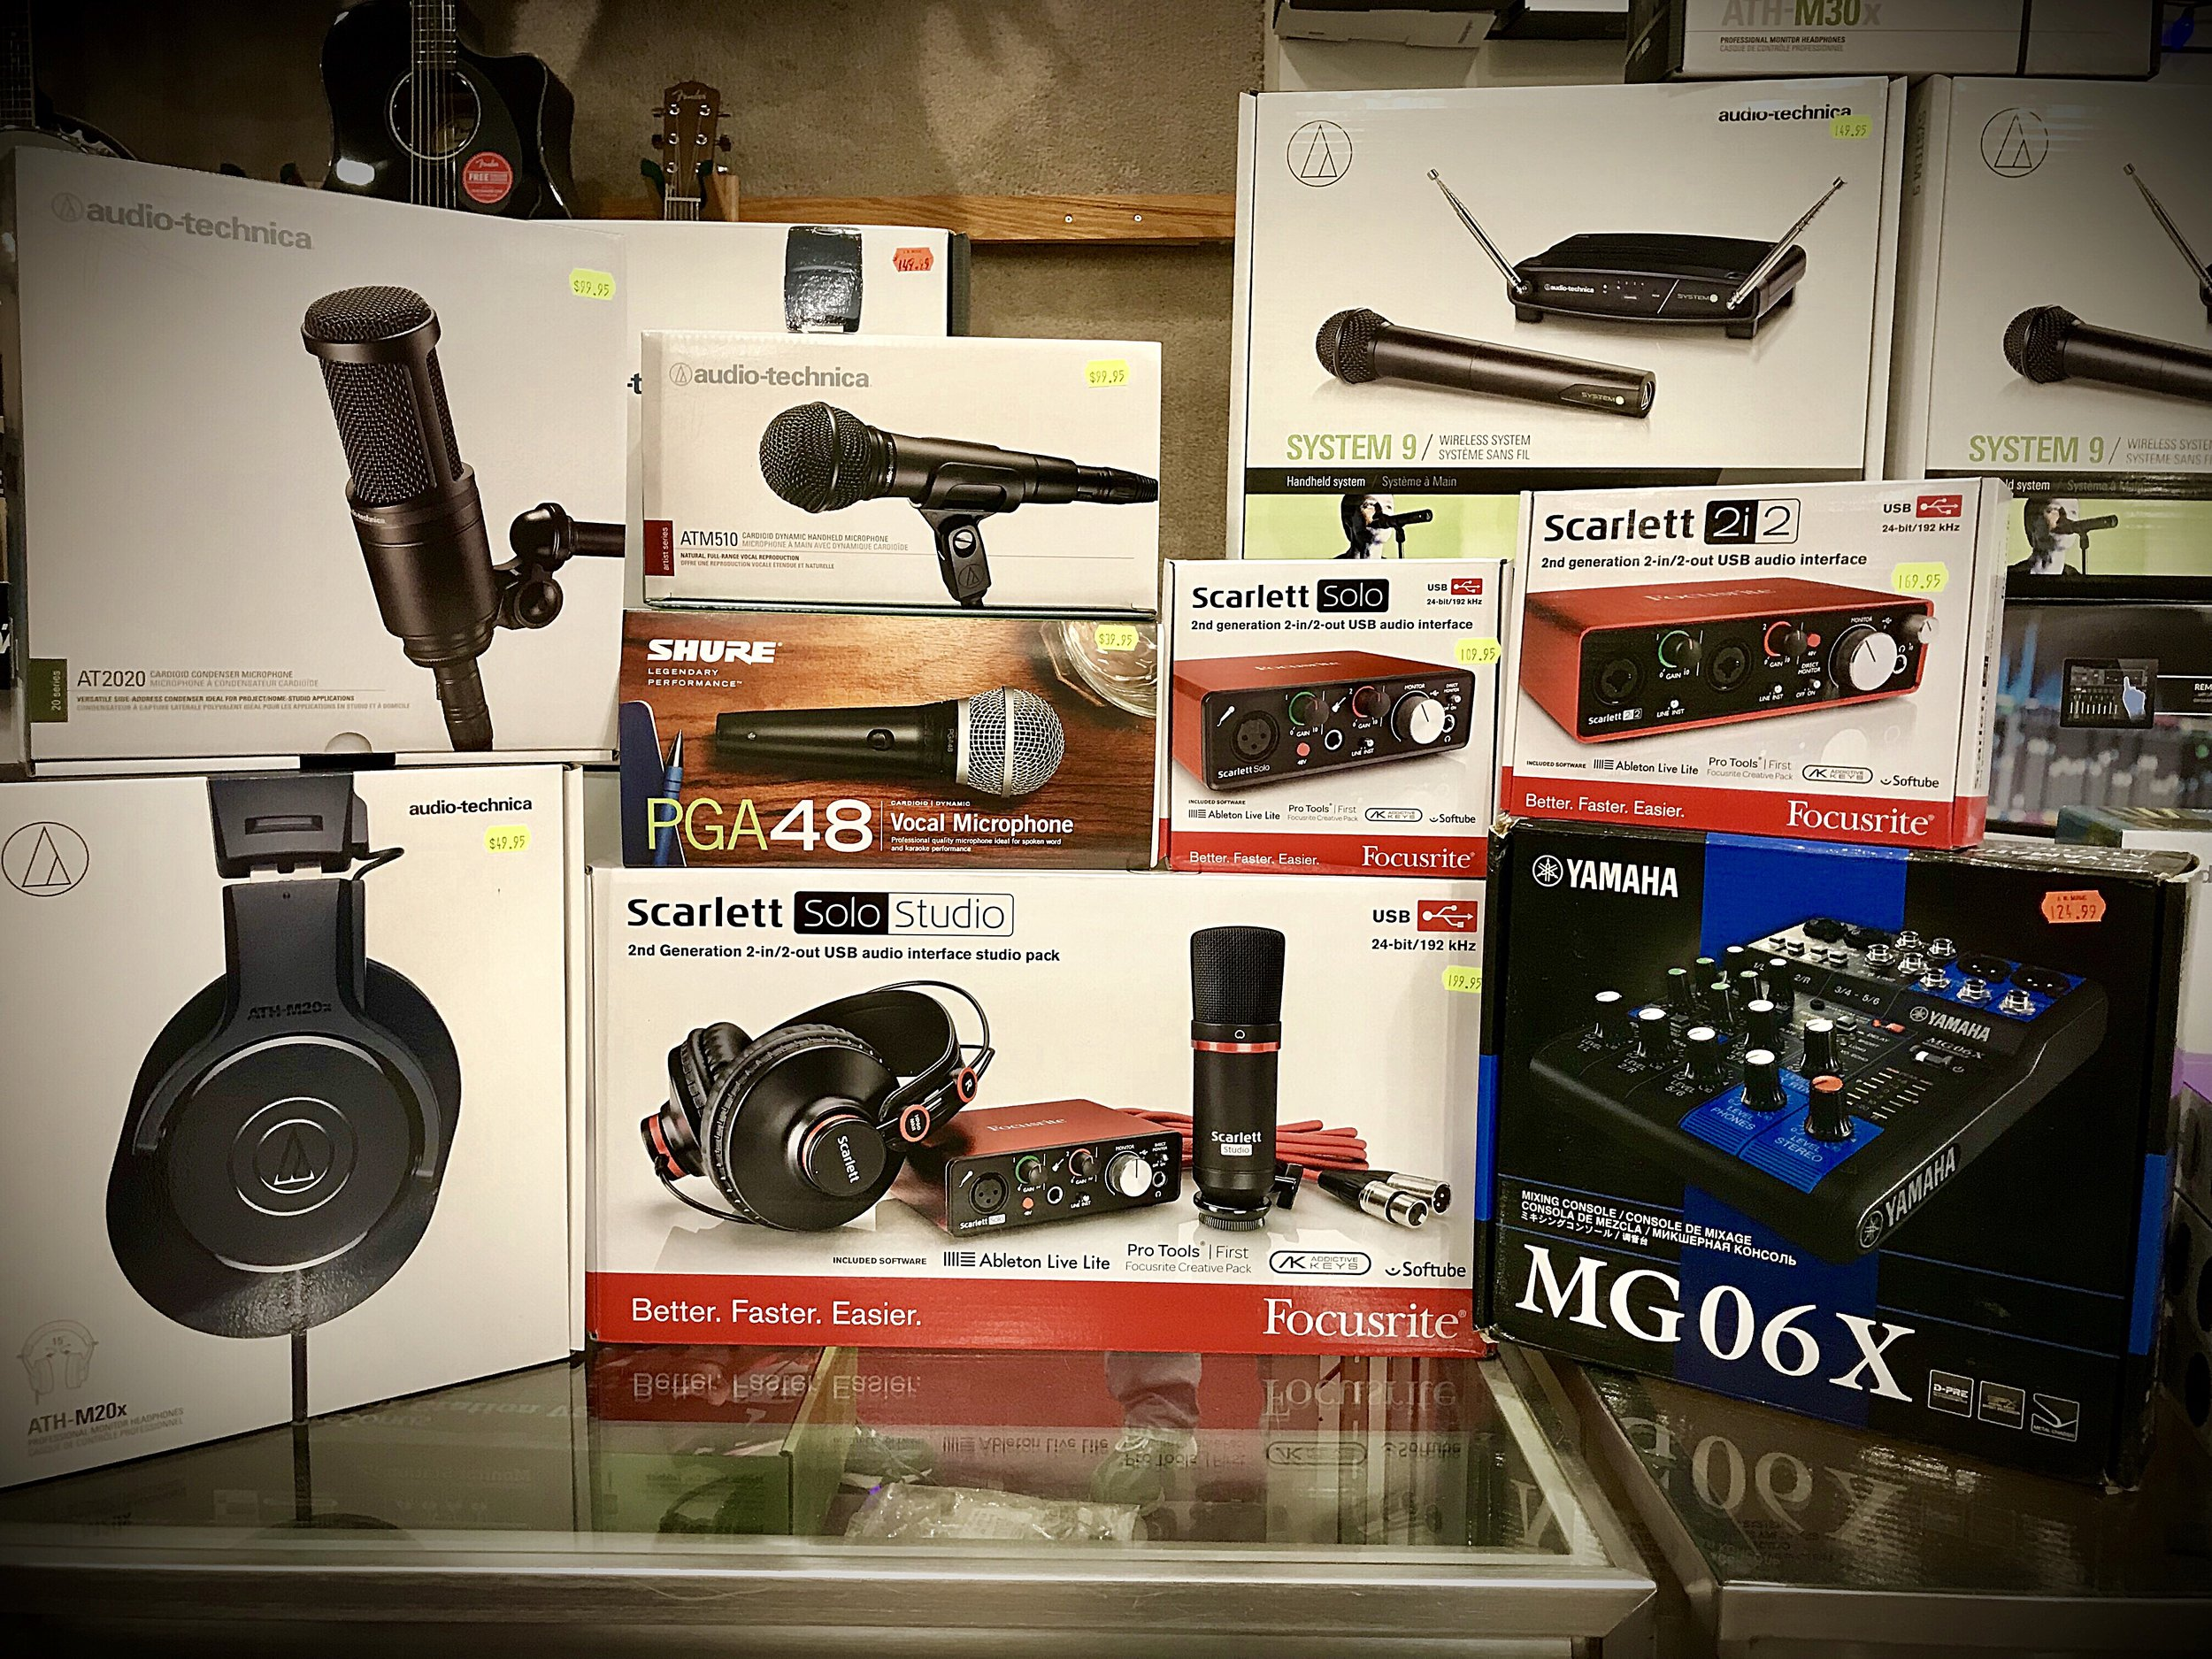 Do you hear what I hear? If not, visit JW Music and improve your audio interfaces!